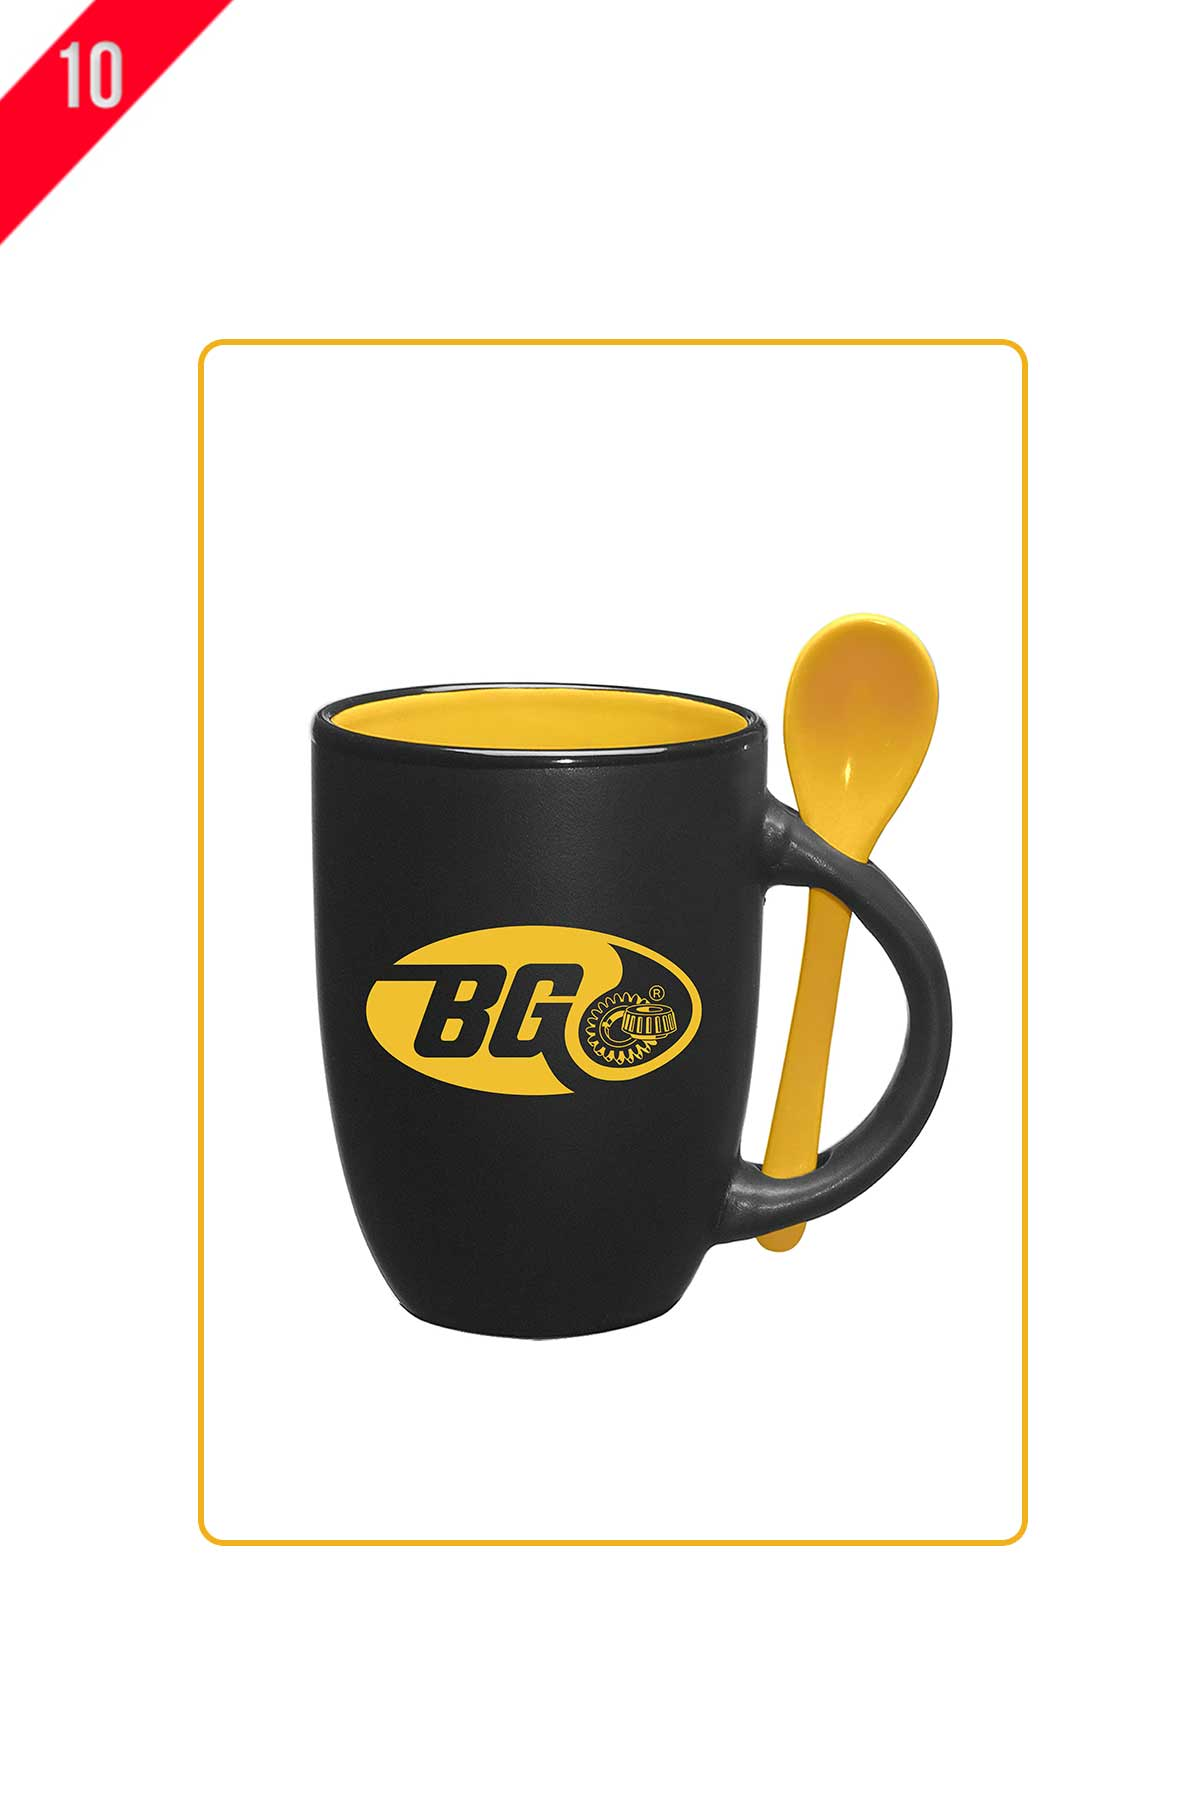 New BG Products Merchandise